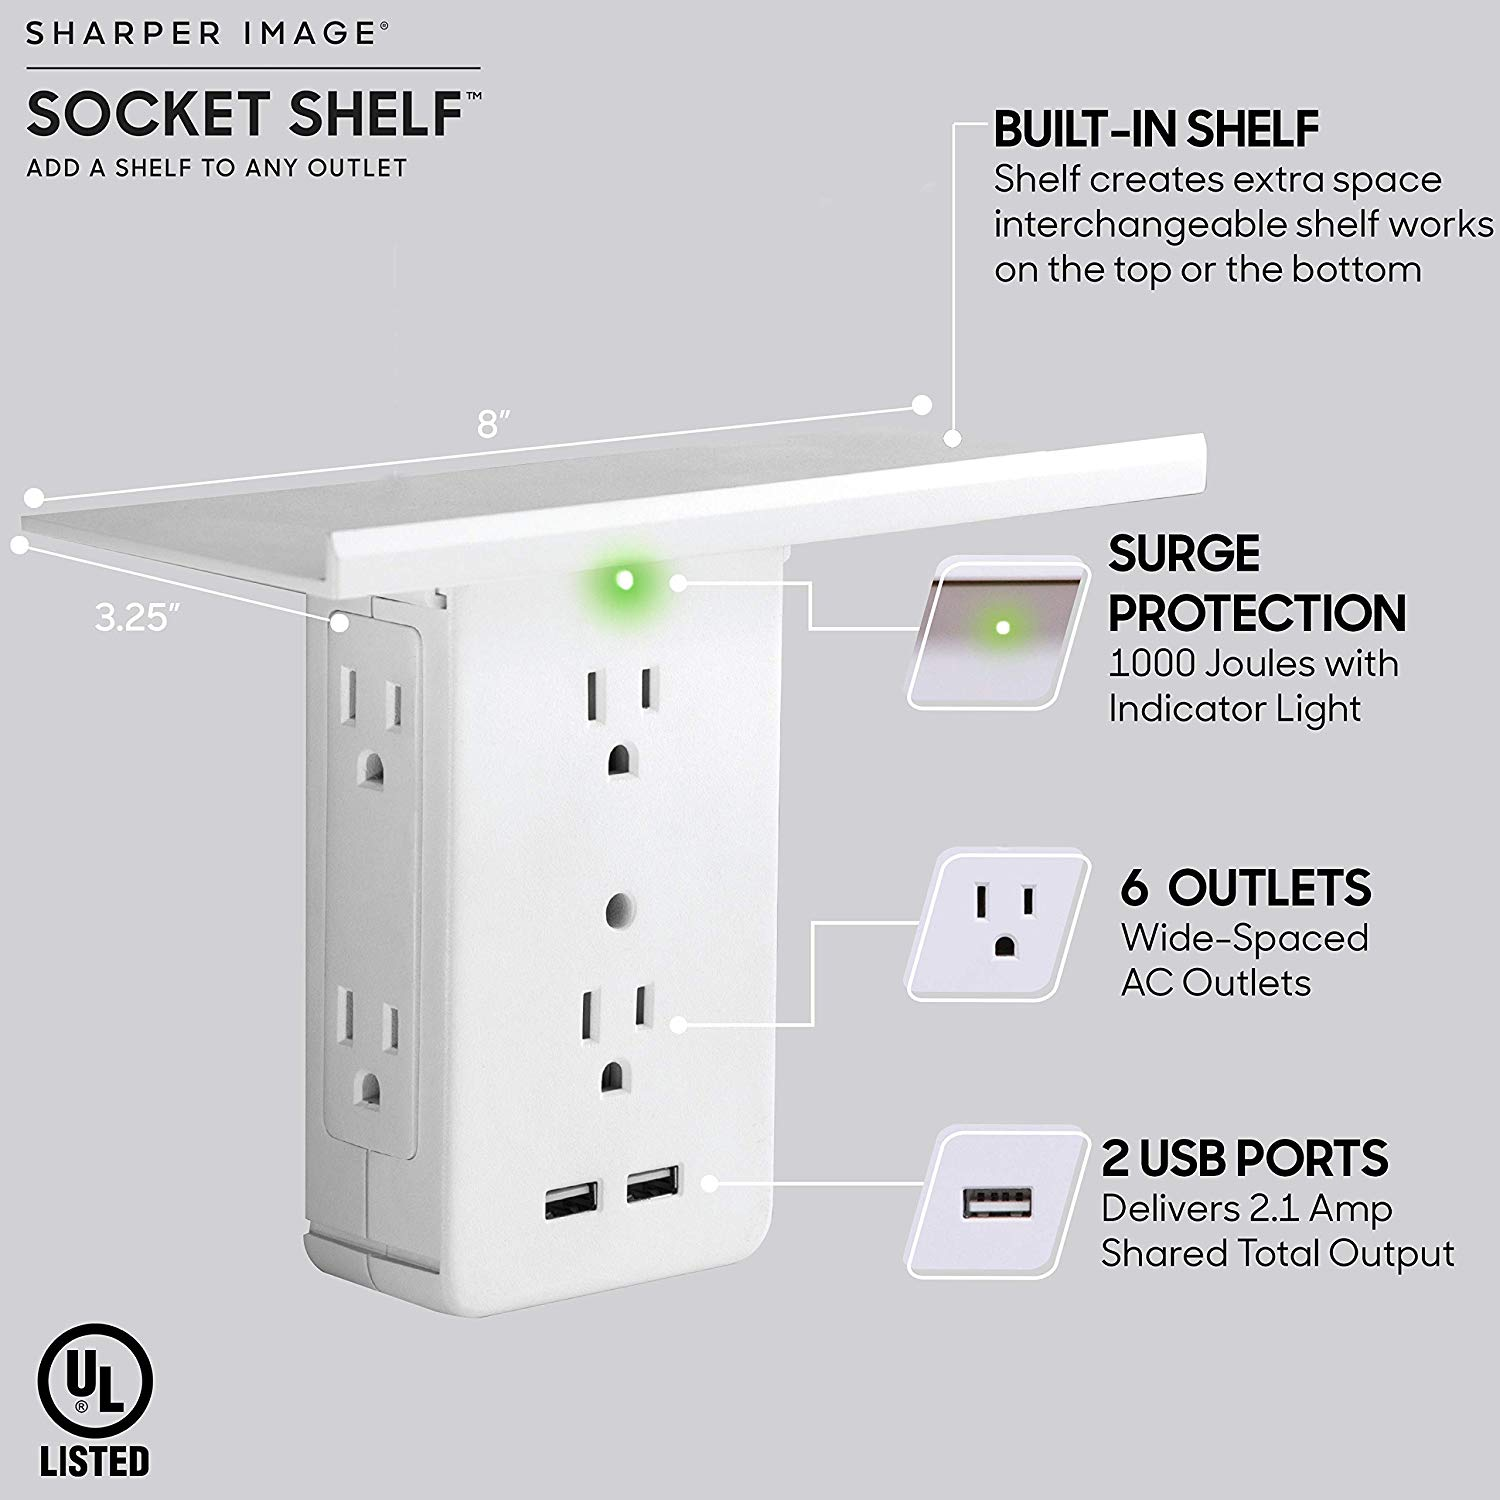 Socket Shelf 8-Port Wall Outlet USB Charger Features